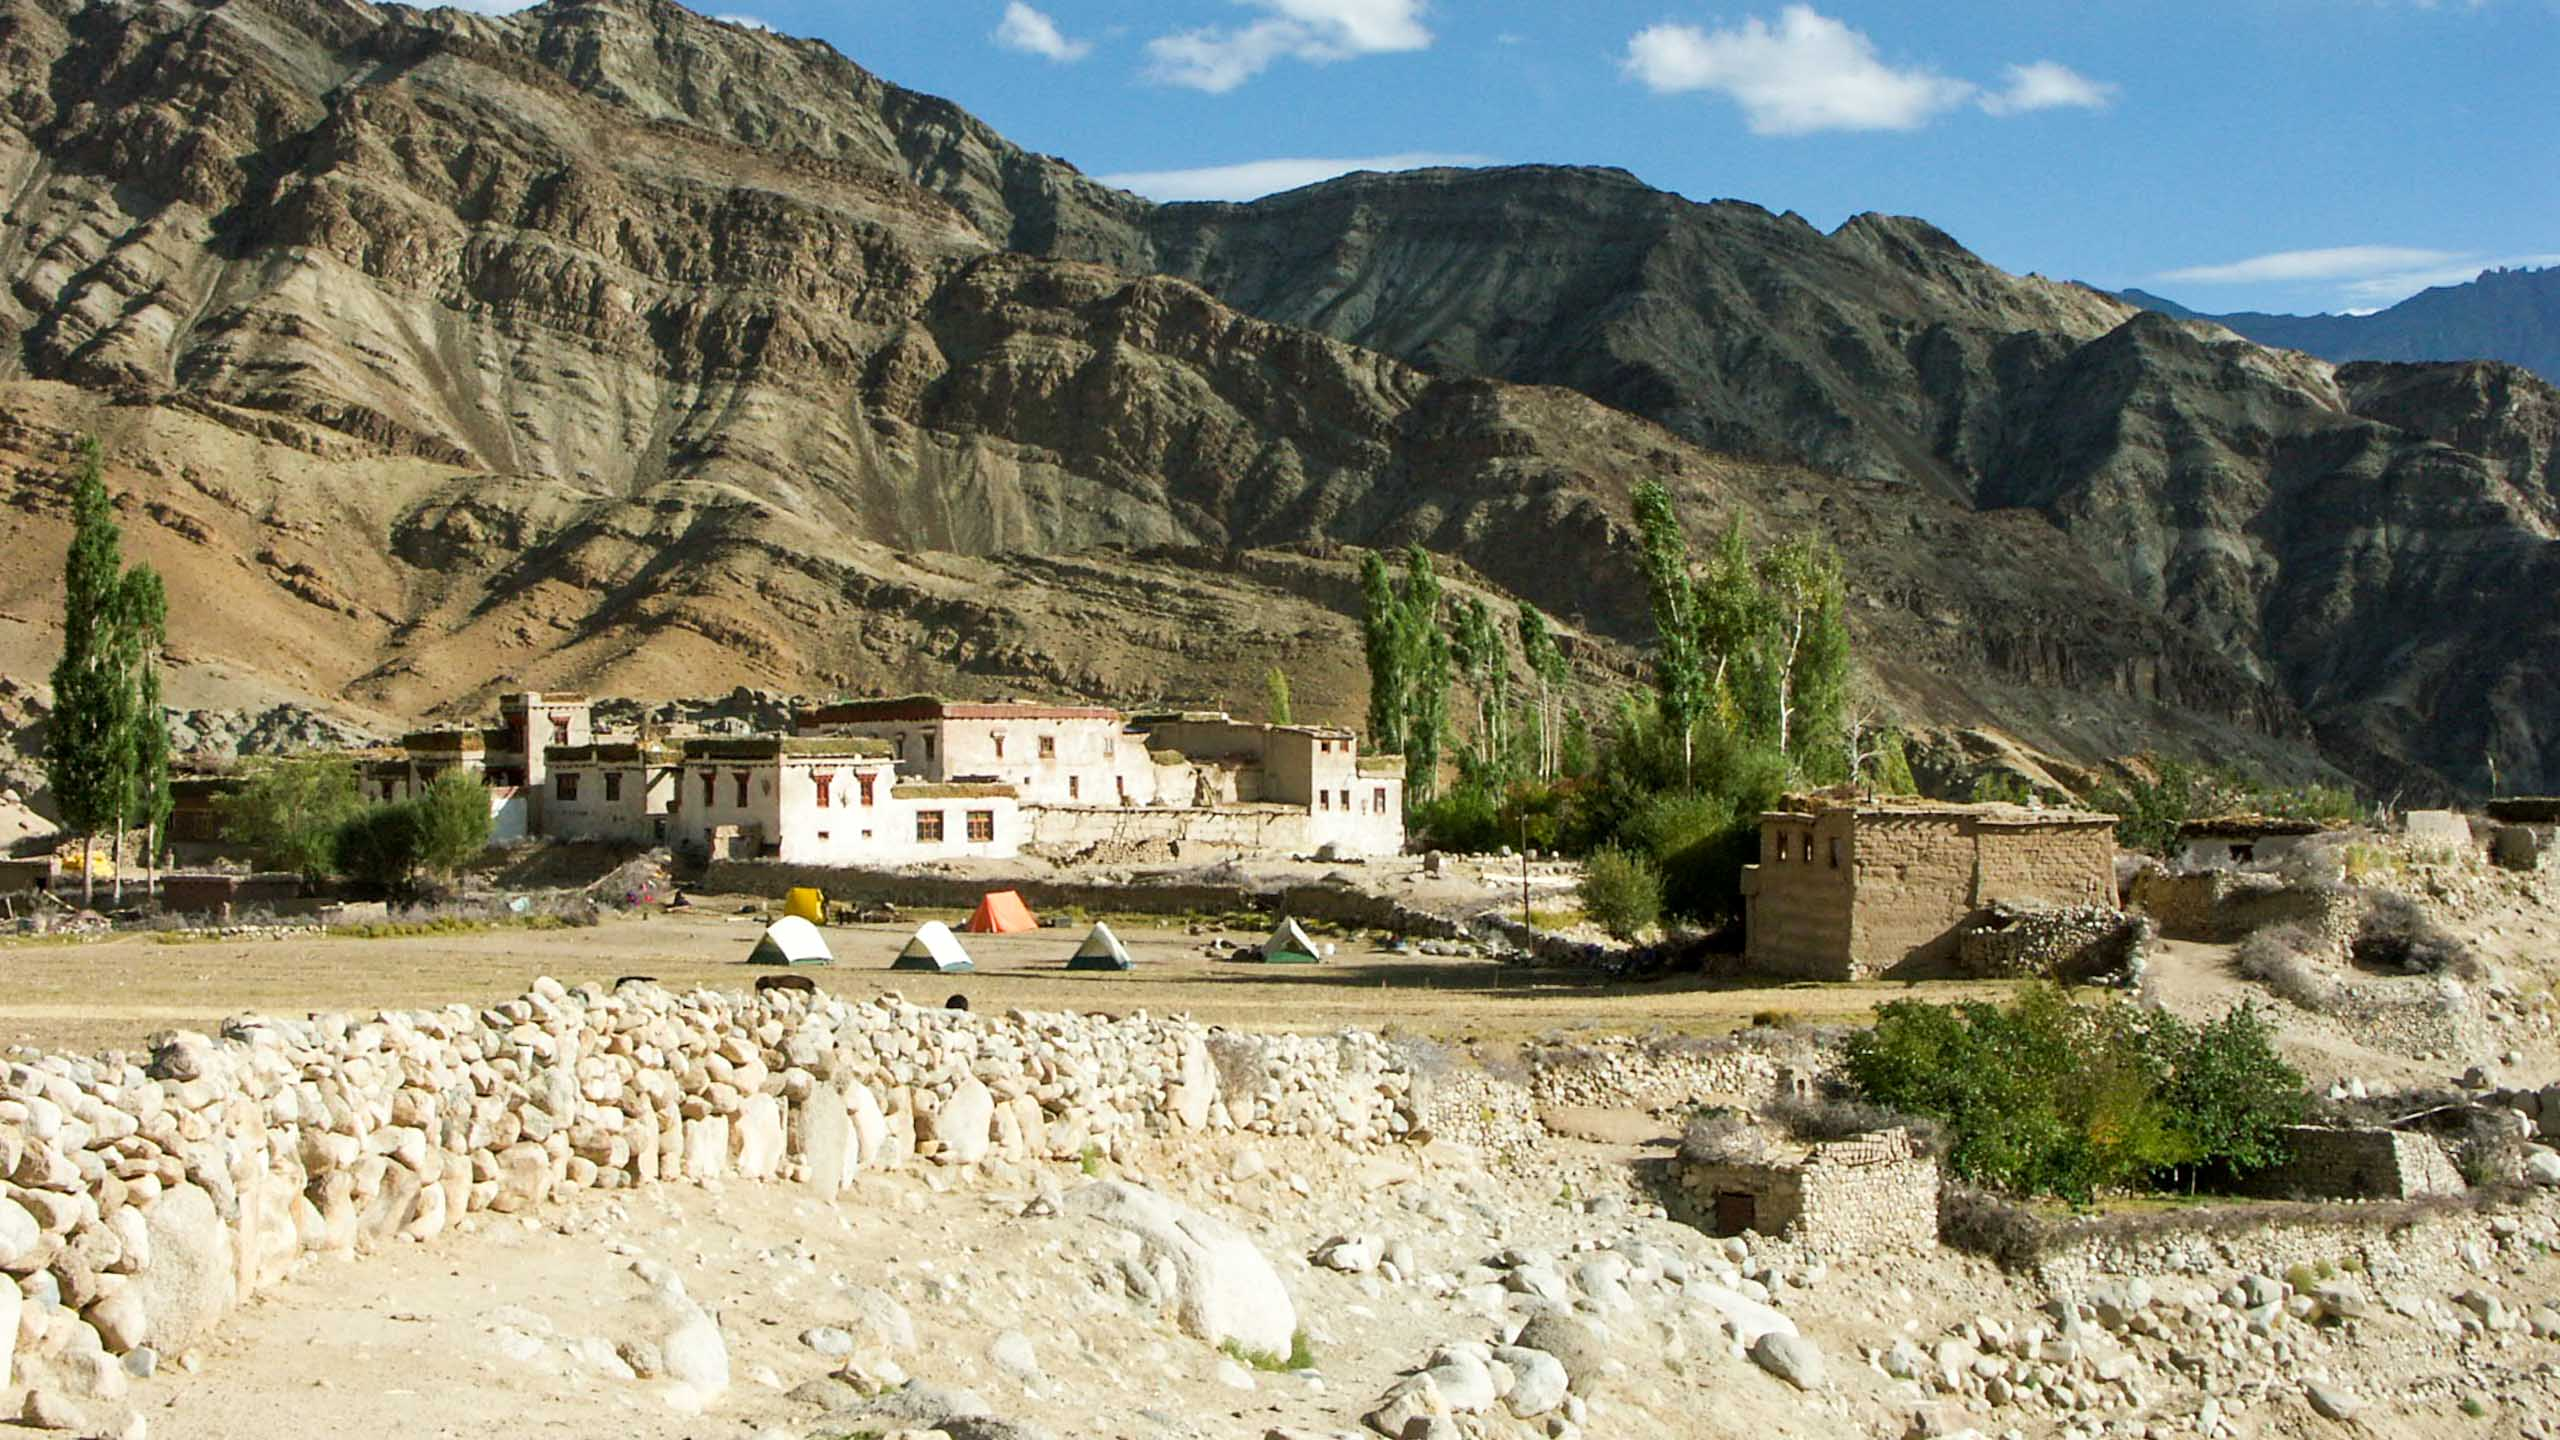 Ladakh building and tents